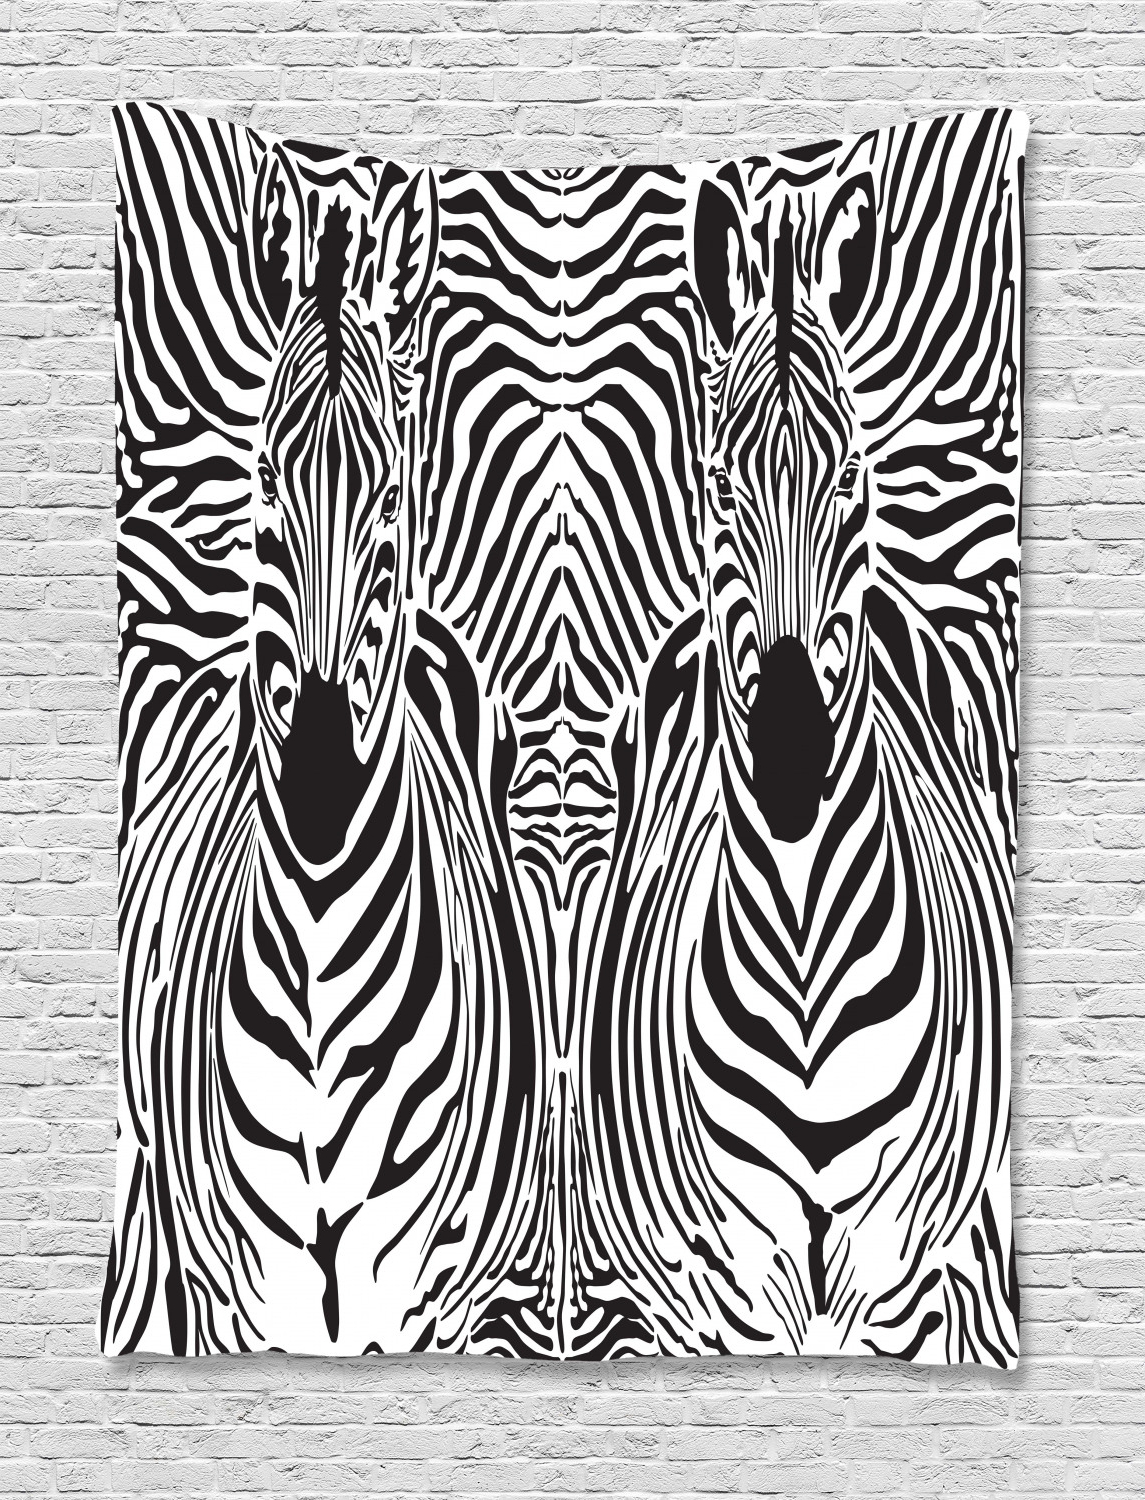 Newest Zebra Print Decor Wall Hanging Tapestry, Illustration Pattern Zebras Skins Background Blended Over Zebra Body Heads, Bedroom Living Room Dorm Regarding Blended Fabric Wall Hangings With Hanging Accessories Included (View 16 of 20)